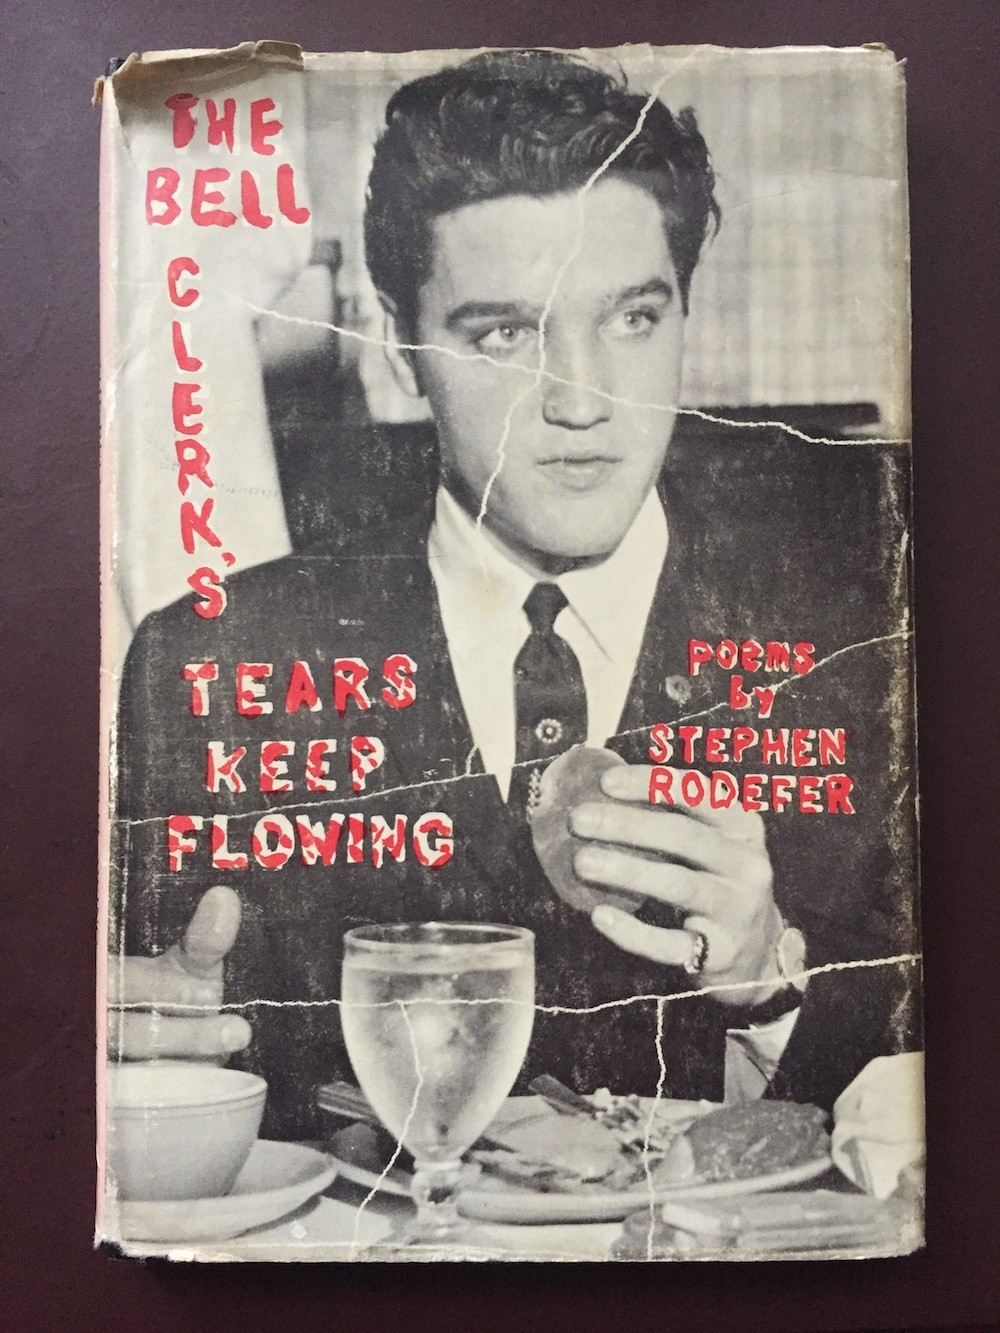 Cover for The Bell Clerk's Tears Keep Flowing by Stephen Rodefer